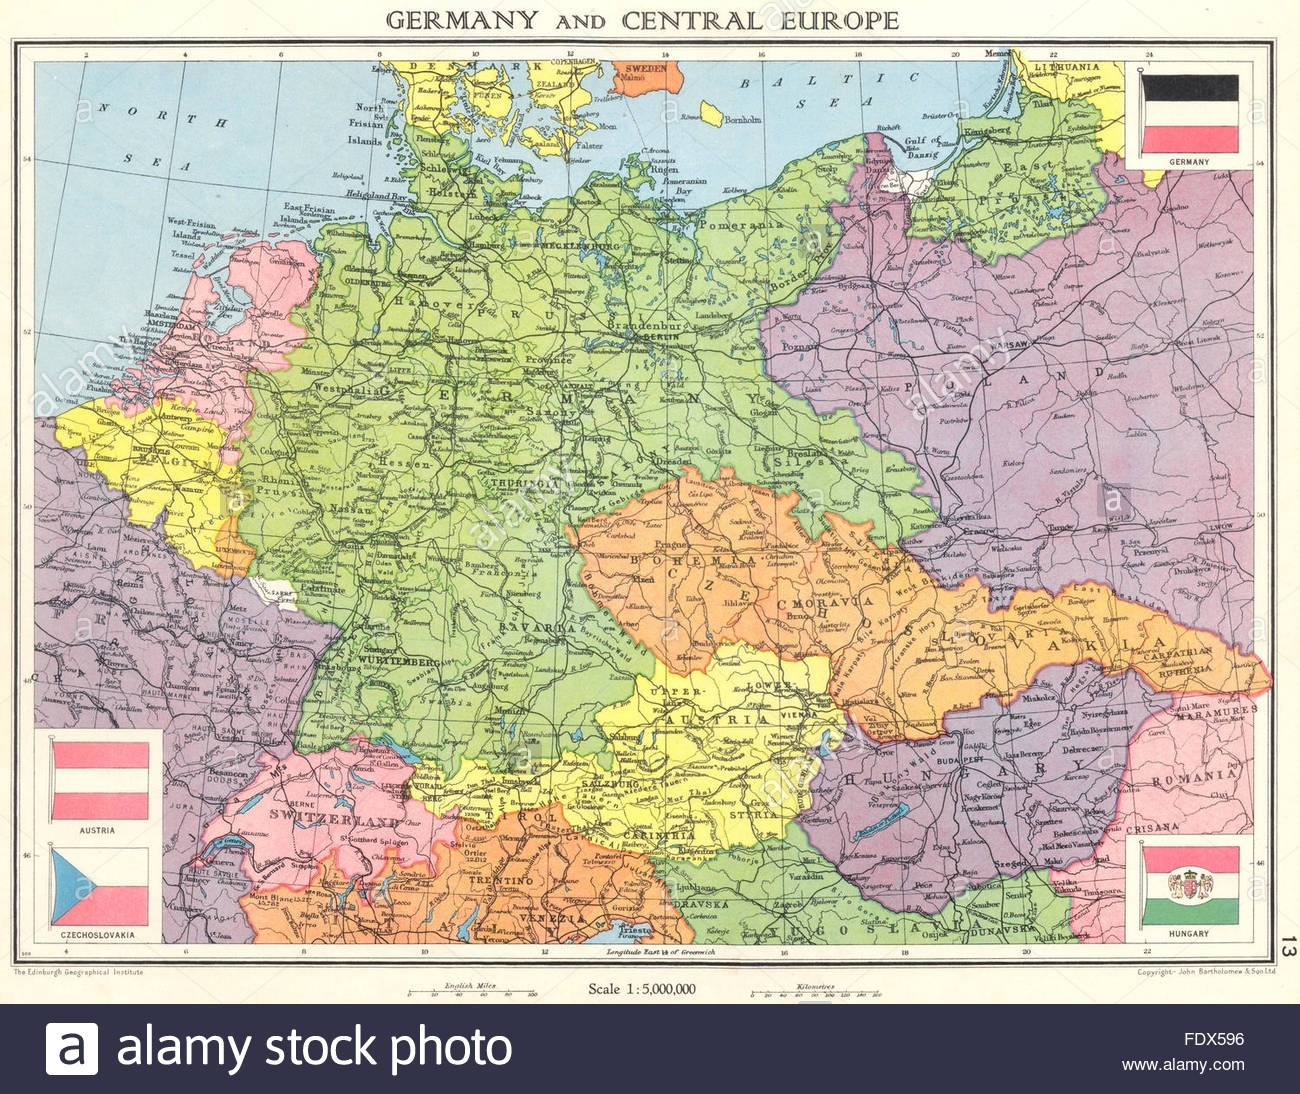 Germany & Central Europe: Shortly Before World War 2. Saarland, 1938 for Germany World War 2 Map